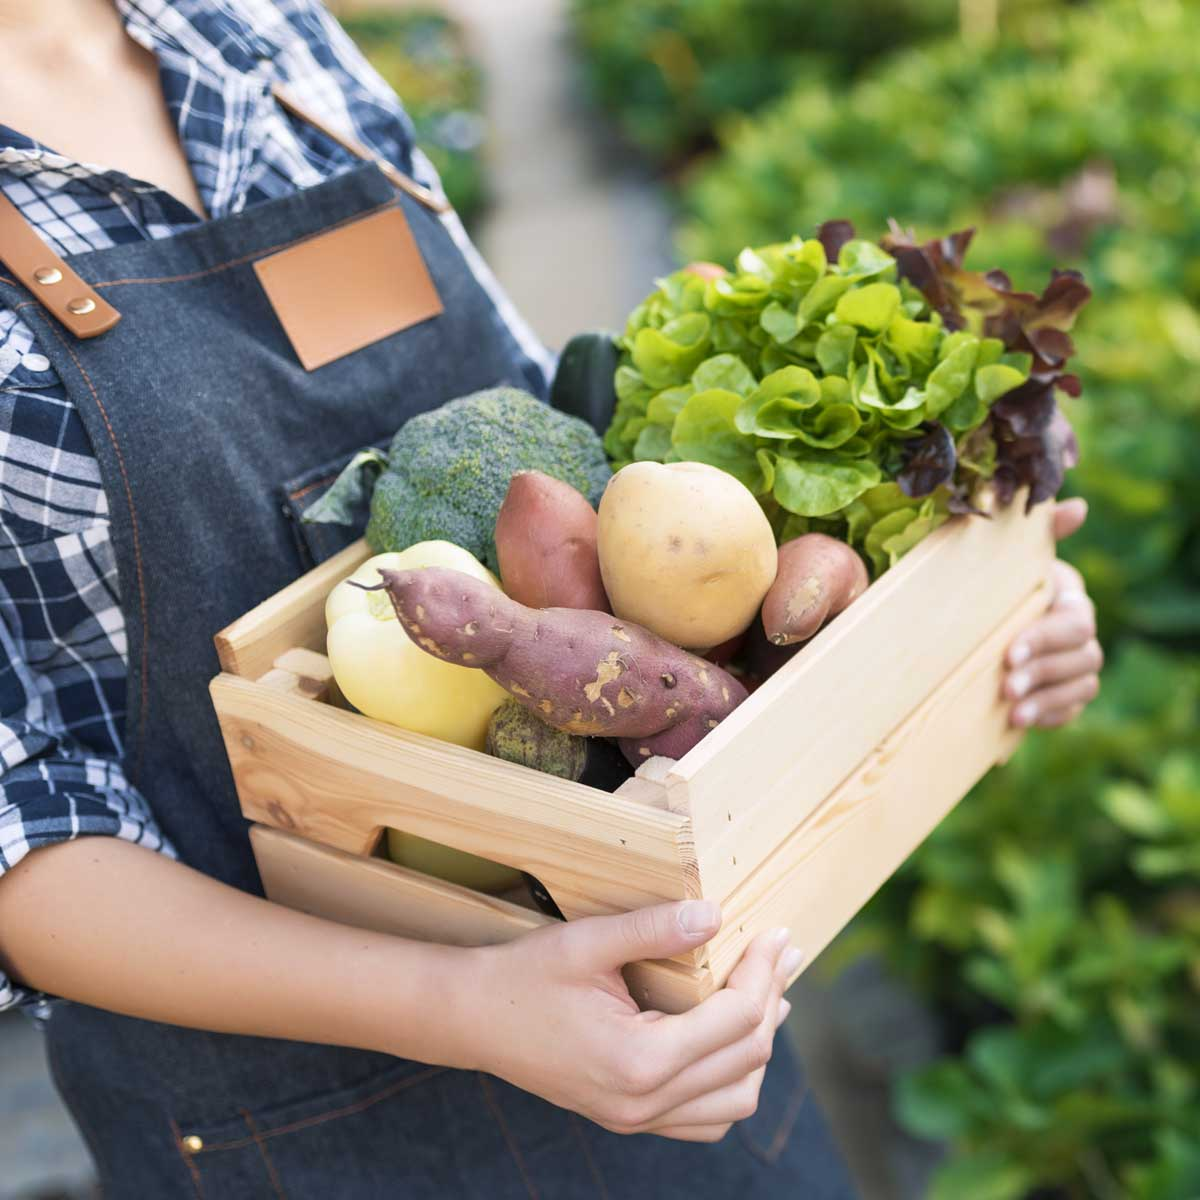 Image of someone carrying a crate of vegetables.